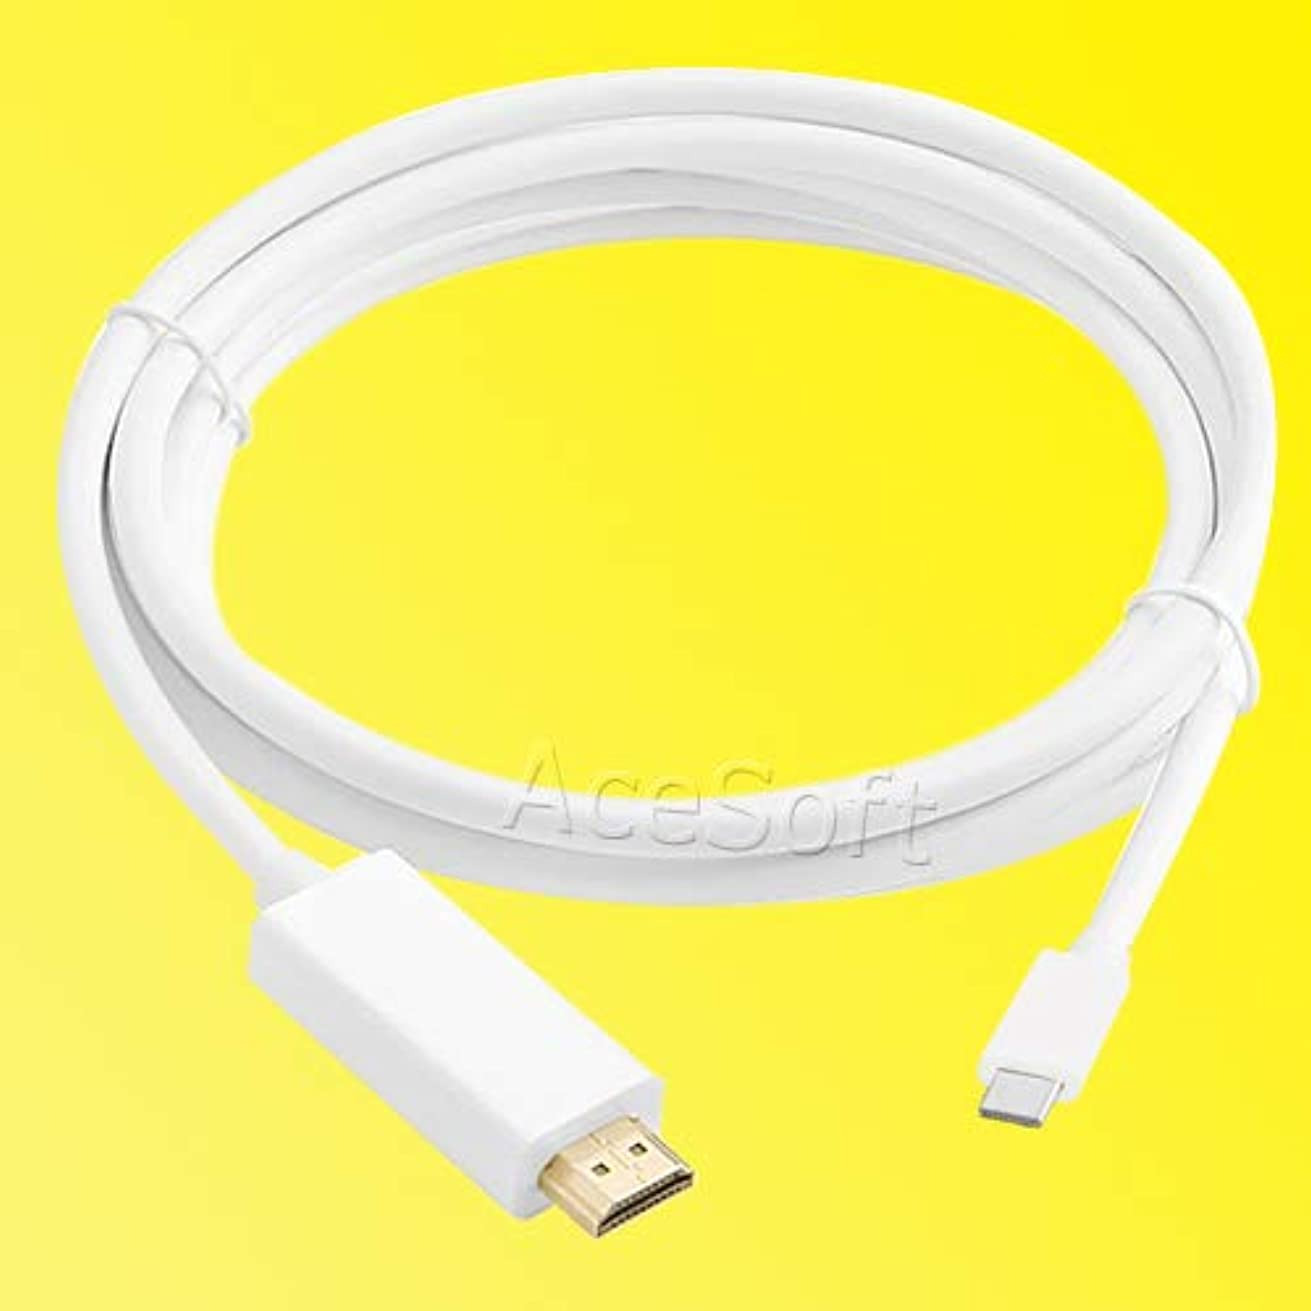 White - Type-C to HDMI Cable 4K2K HD Charger Adapter Converter for Samsung Galaxy Note 8 Cellphone